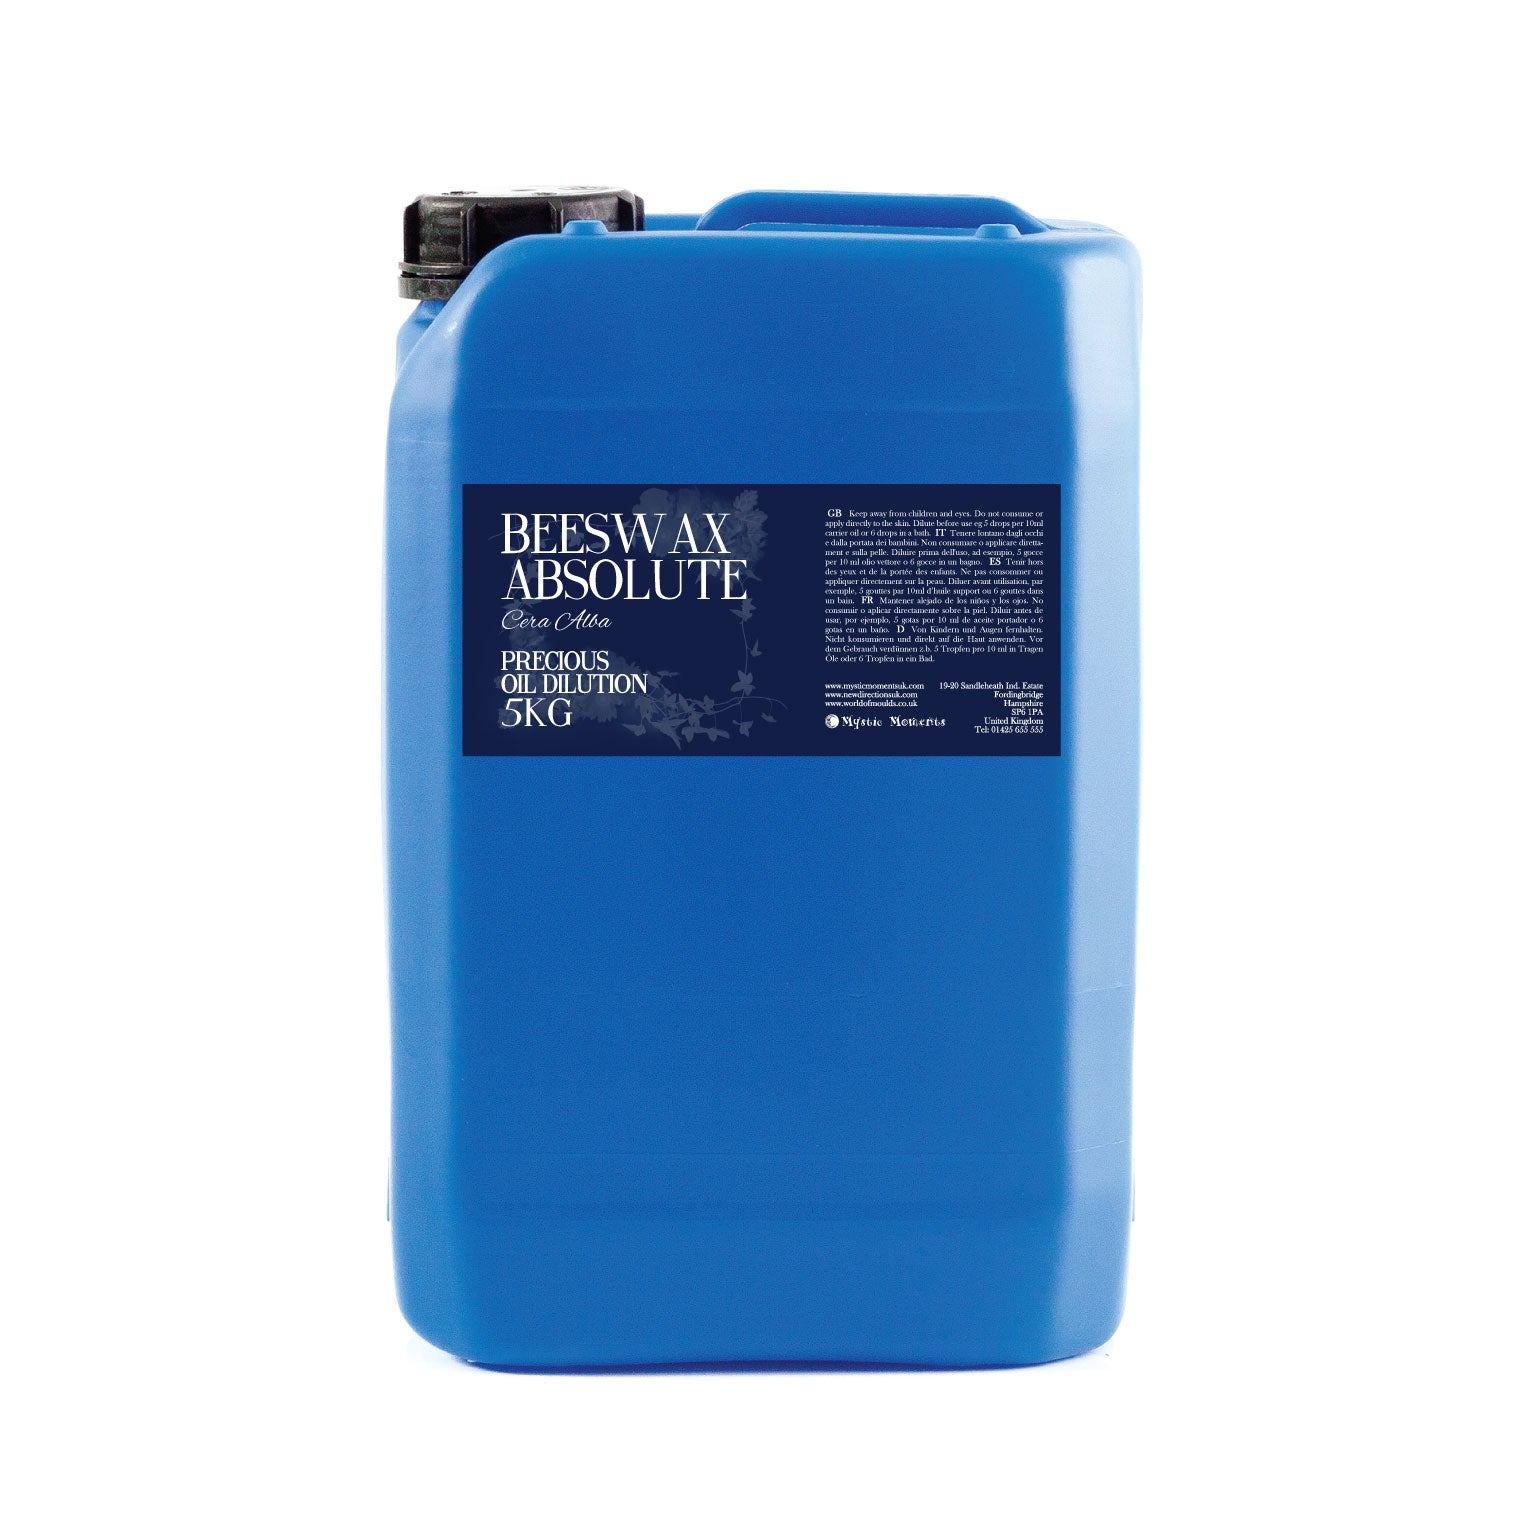 Beeswax Absolute Oil Dilution